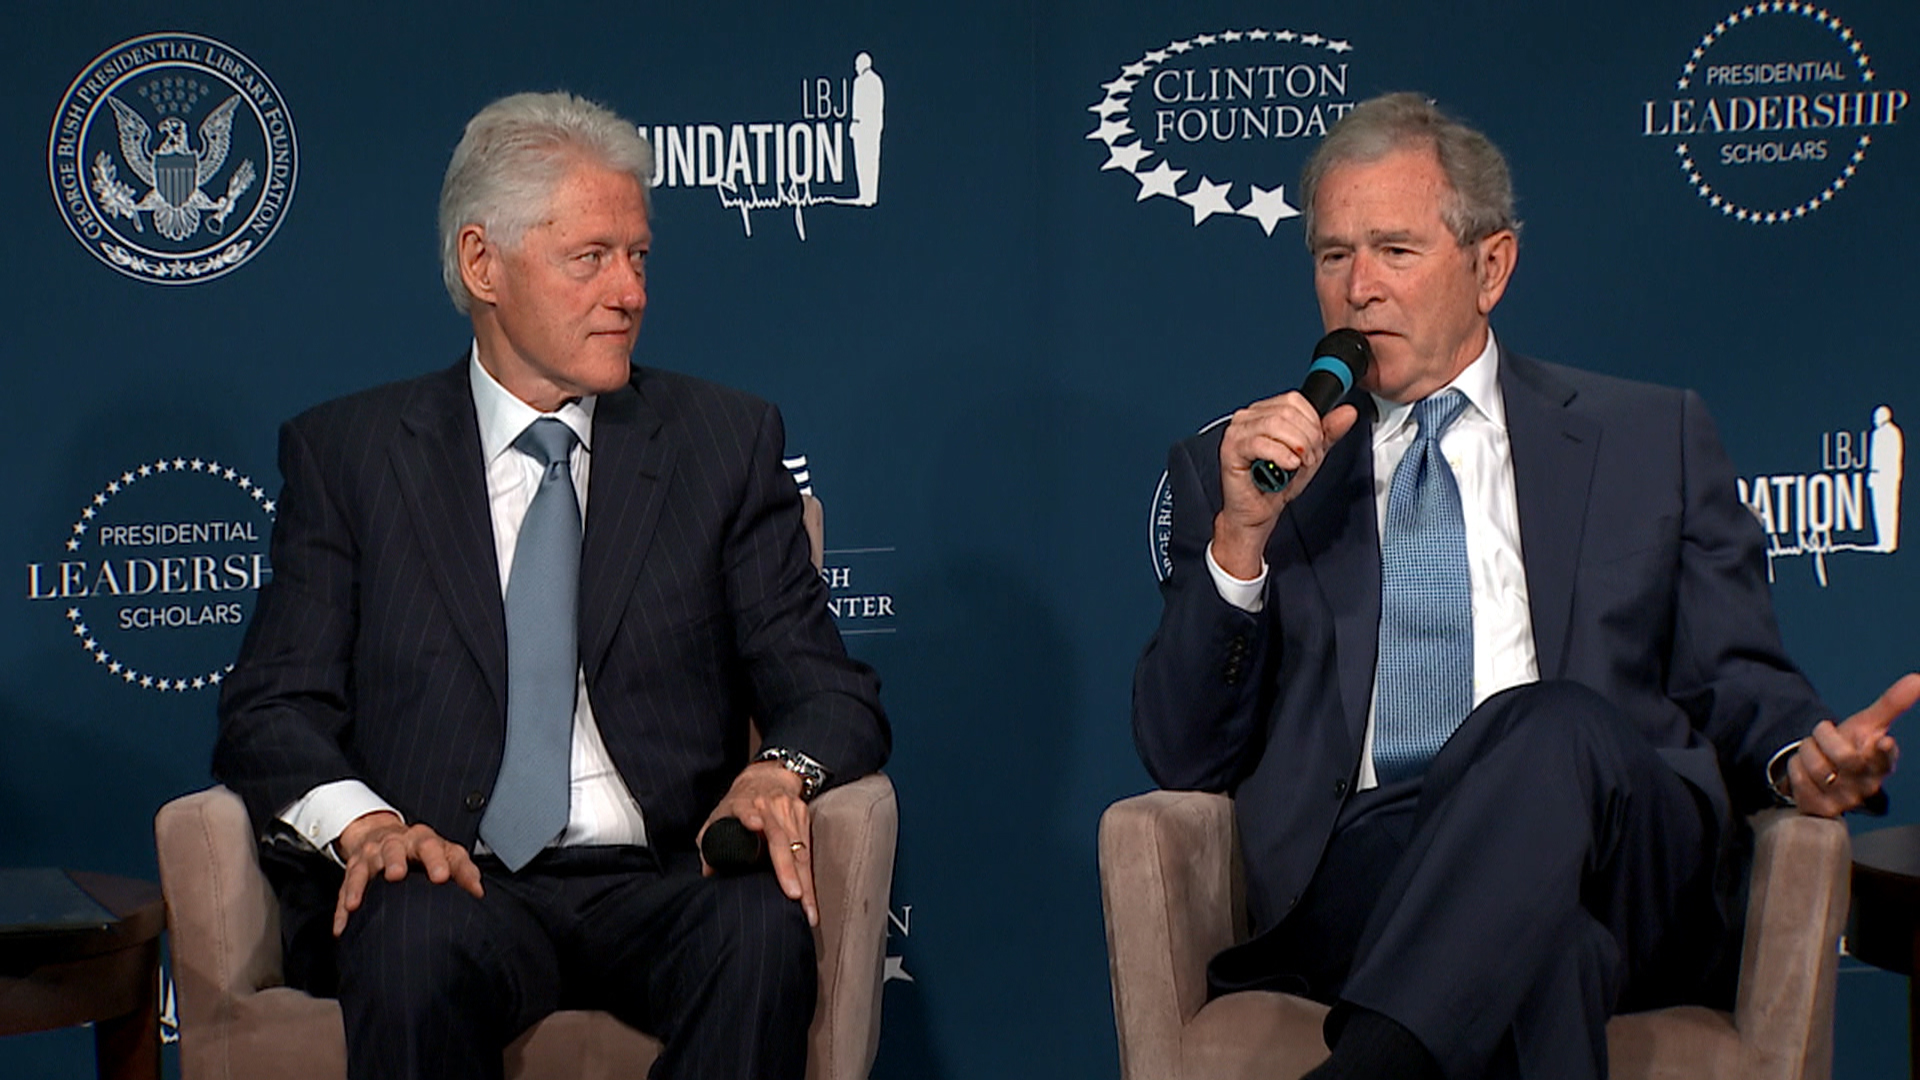 an analysis of the speech delivered by president bill clinton at the annual prayer breakfast